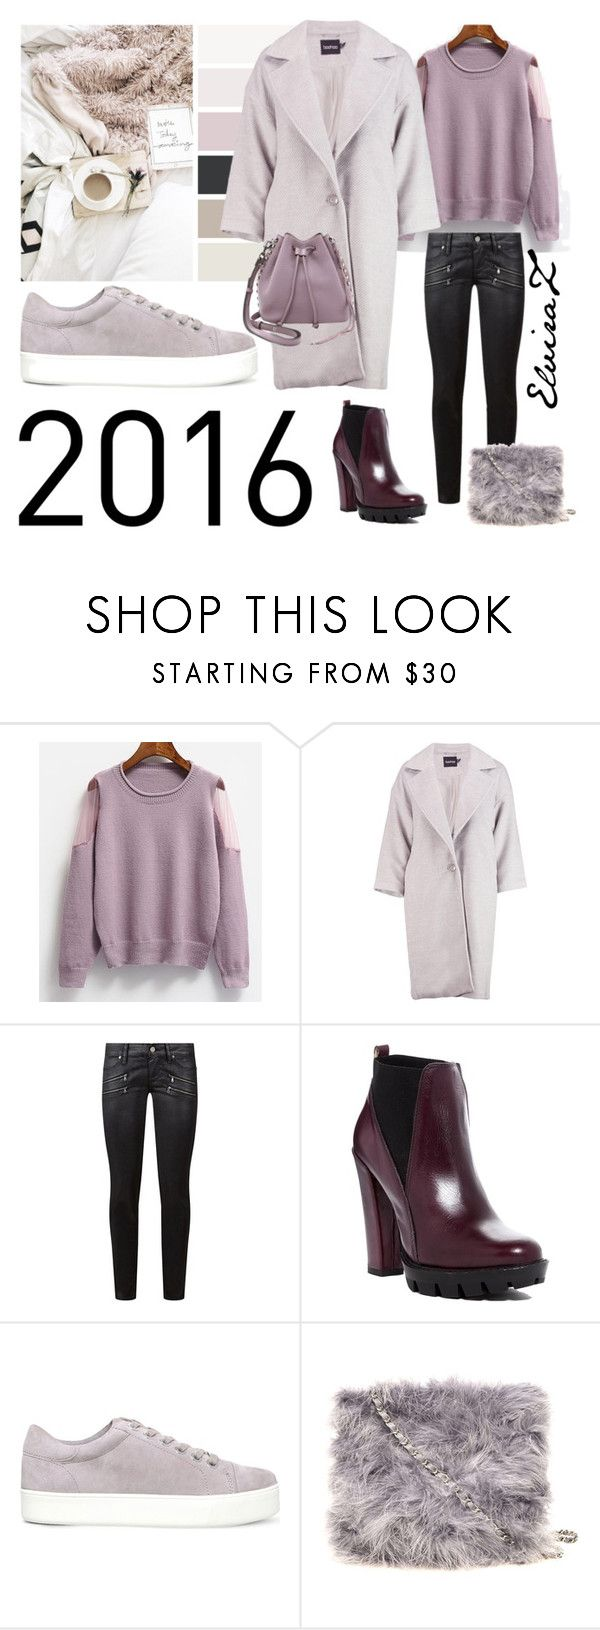 """""""best trend"""" by elza76 ❤ liked on Polyvore featuring Boohoo, Paige Denim, Charles David, Carvela, Dorothy Perkins and Rebecca Minkoff"""